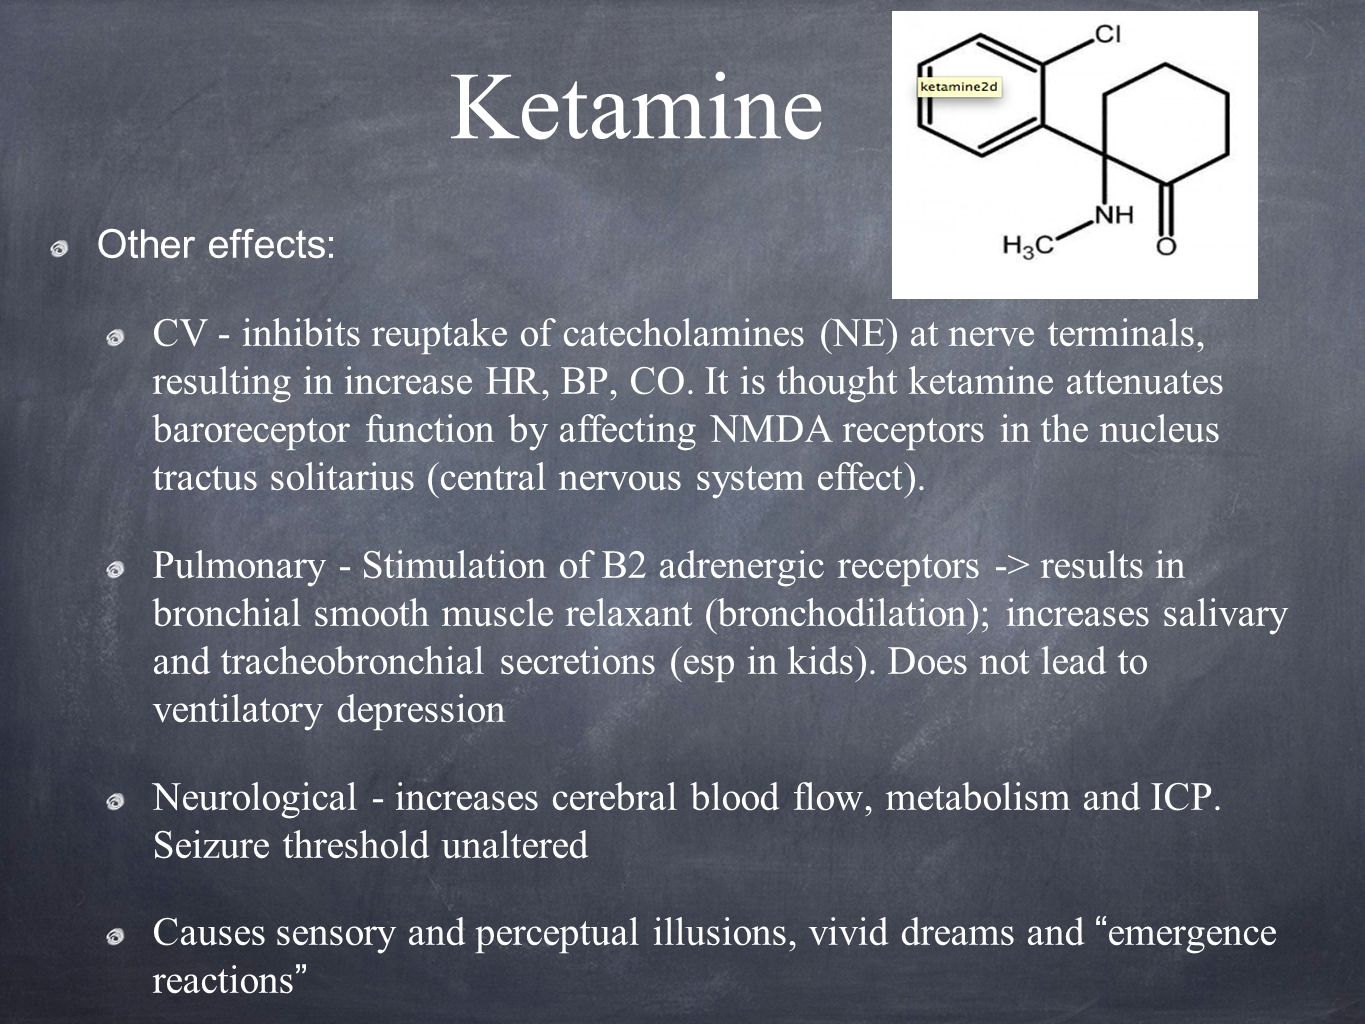 Ketamine Other effects: